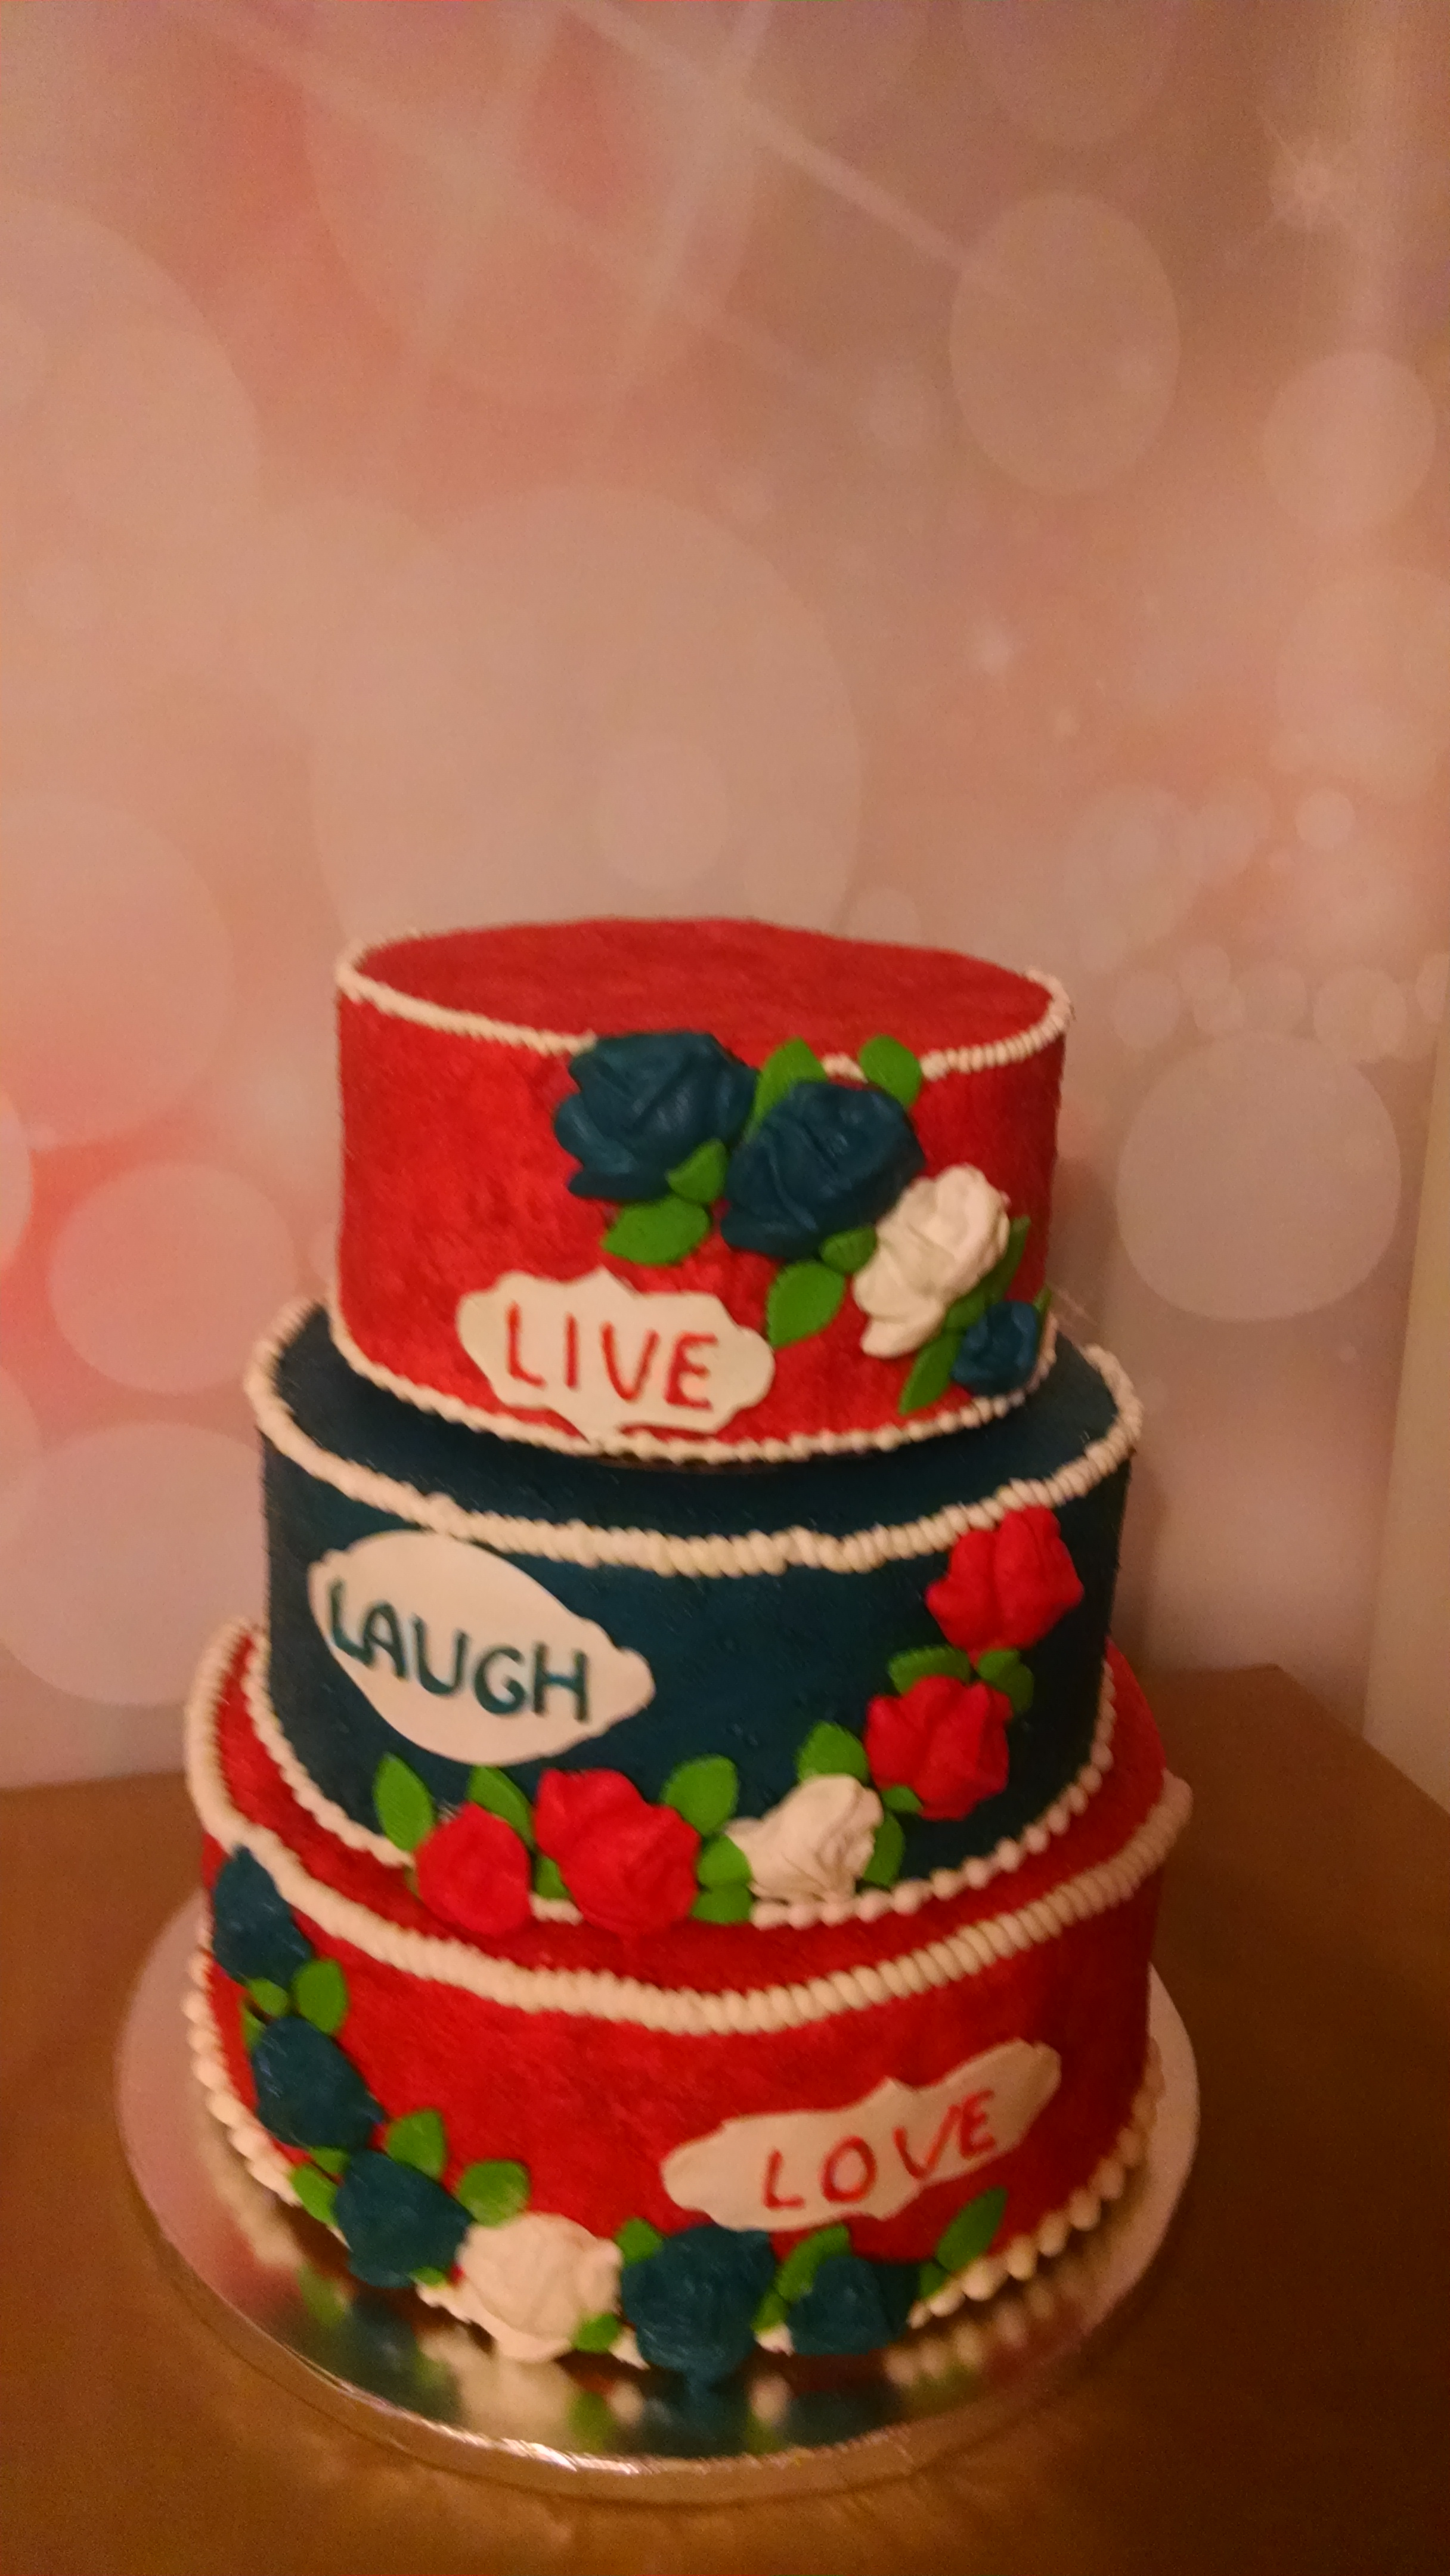 Cake Decorating Classes Wakefield : Newly Wed Cakes - Bakery List